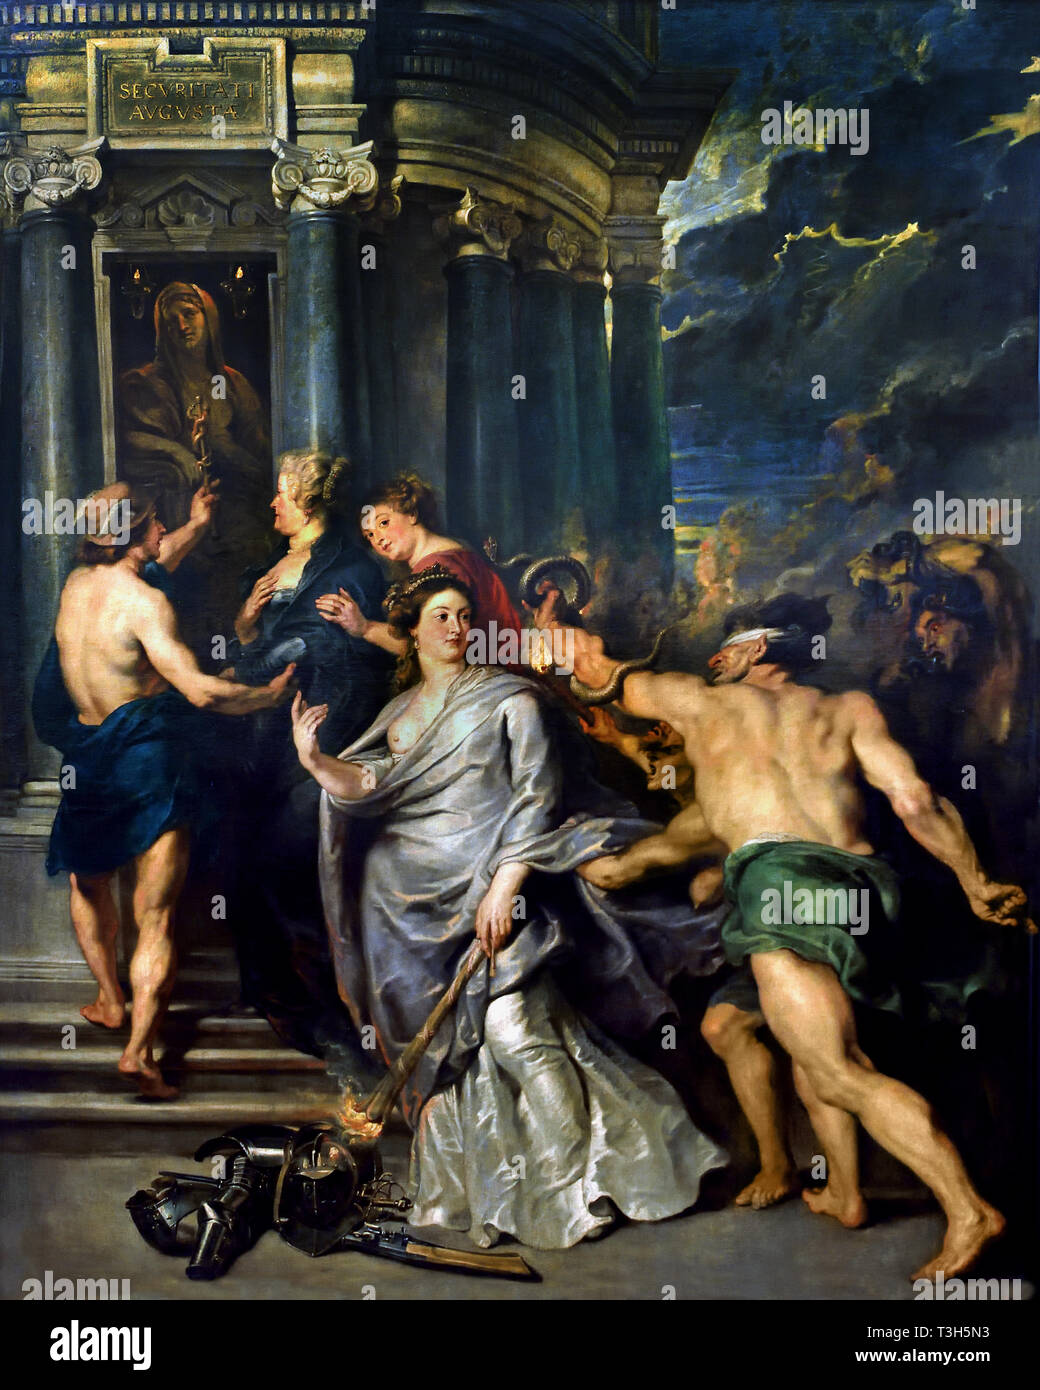 The Queen Opts for Security - The Marie de' Medici Cycle 1622-1624  by Peter Paul Rubens commissioned by Queen Marie de' Medici, widow of King Henry IV of France, for the Luxembourg Palace in Paris, - Stock Image